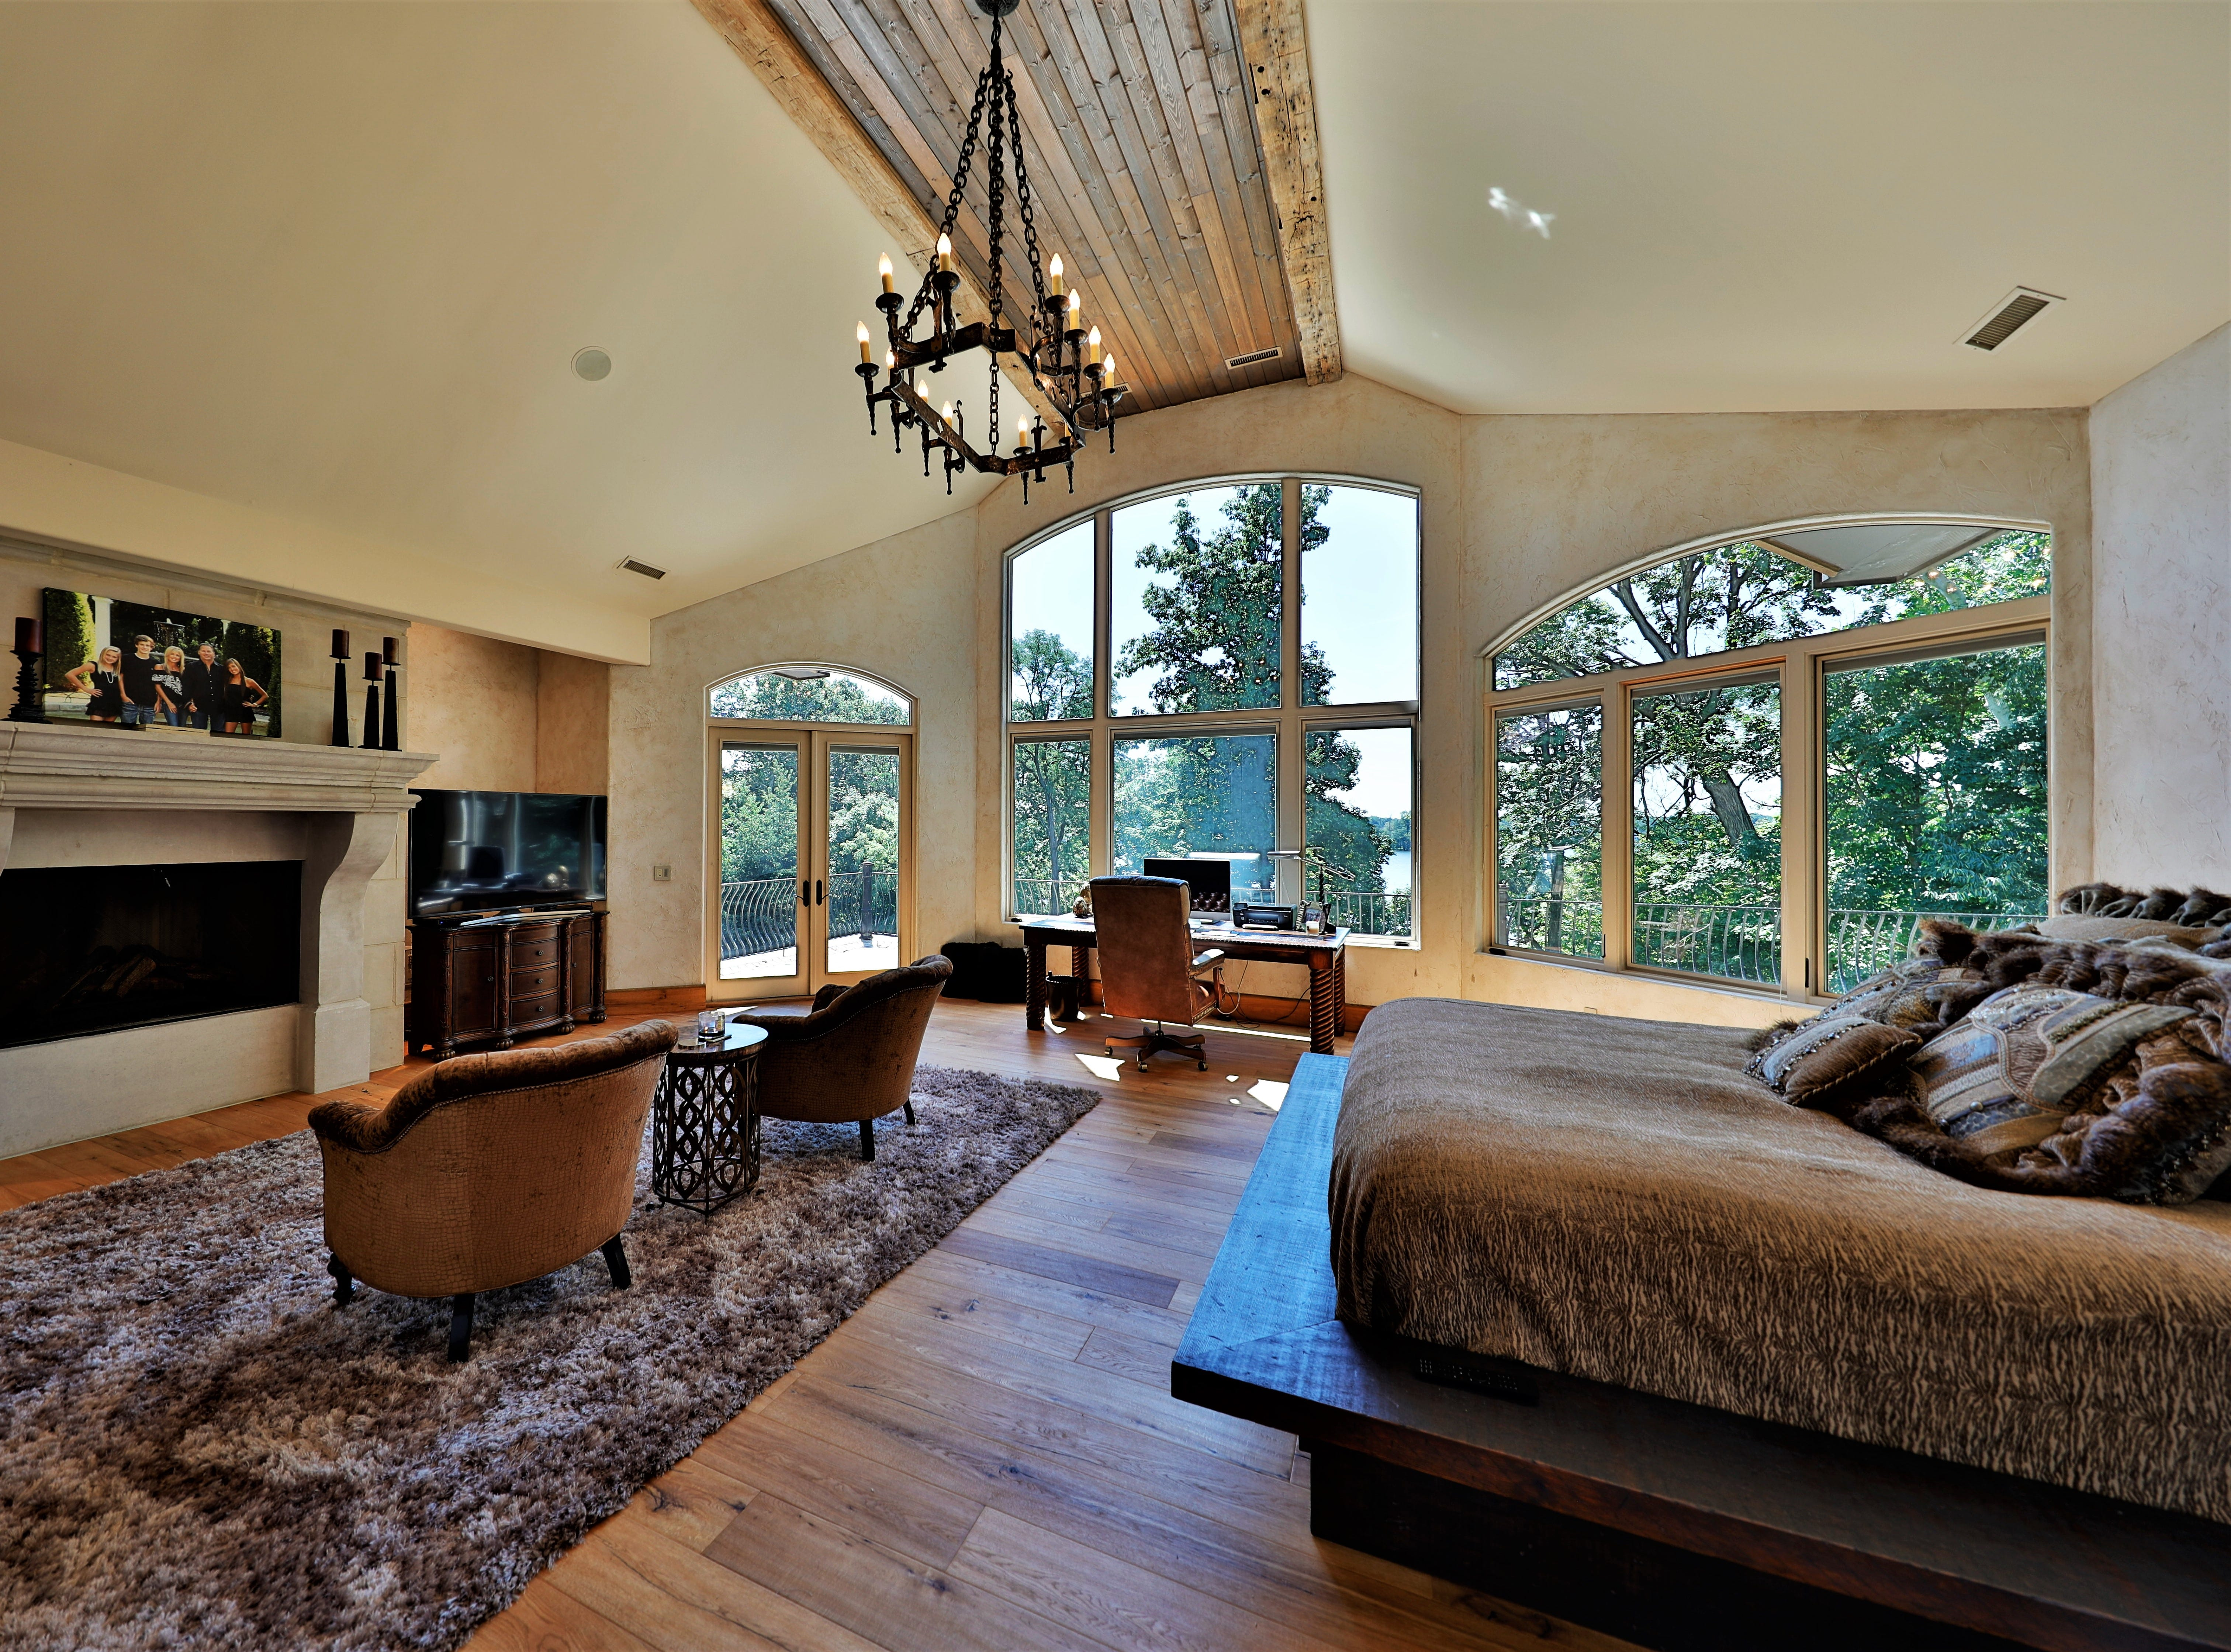 The master suite on the second floor includes floor-to-ceiling windows, a wood-burning fireplace and outdoor veranda.